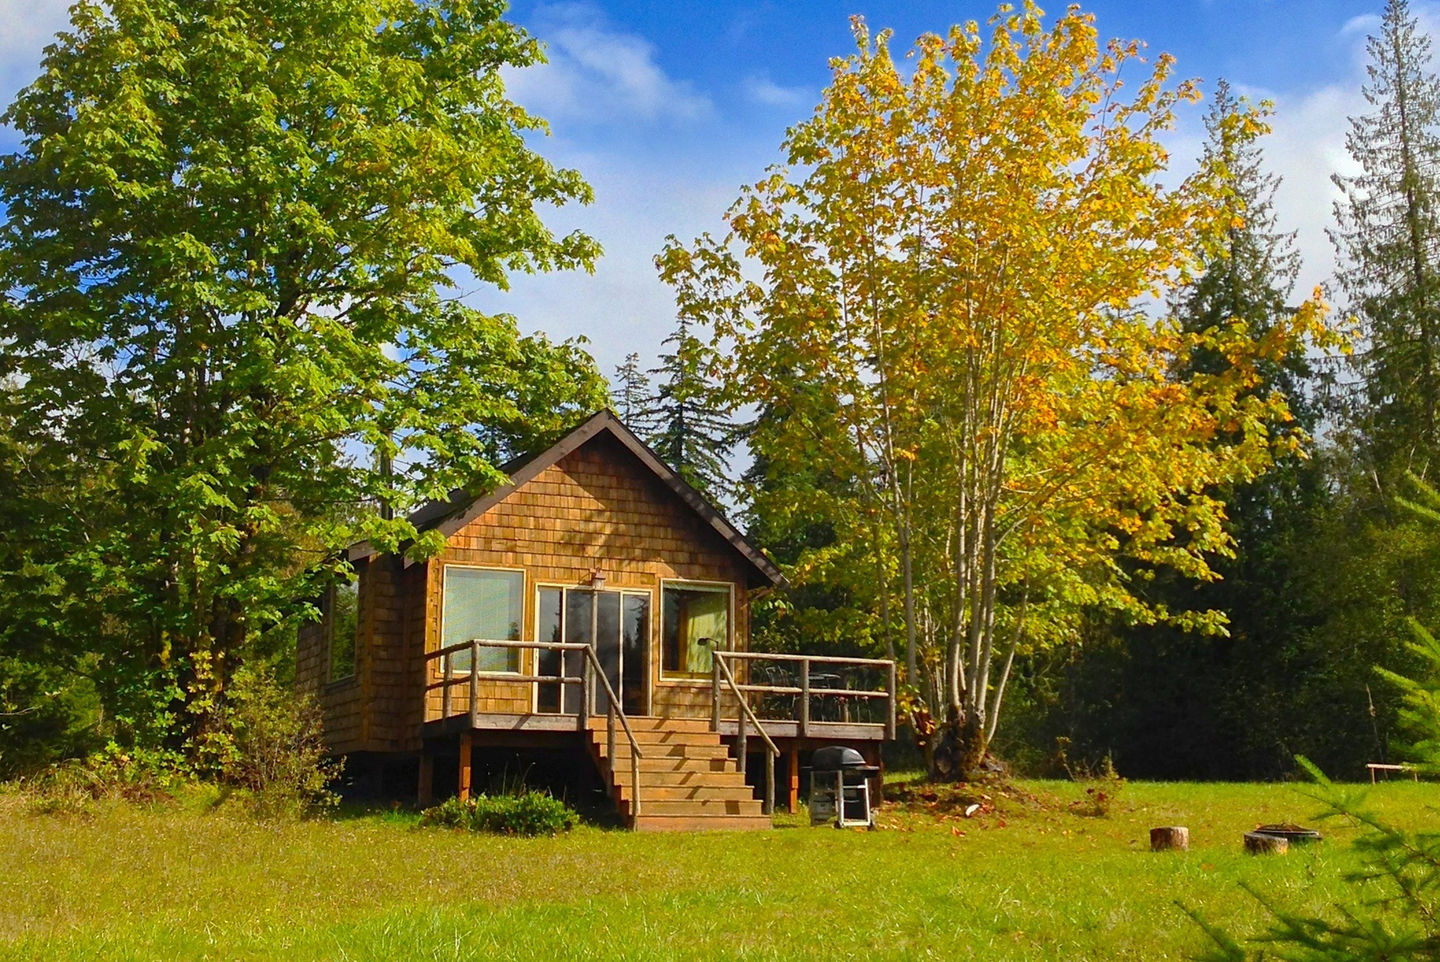 The Pond Cottage, An Idyllic Retreat Surrounded By Nature | Small House  Bliss